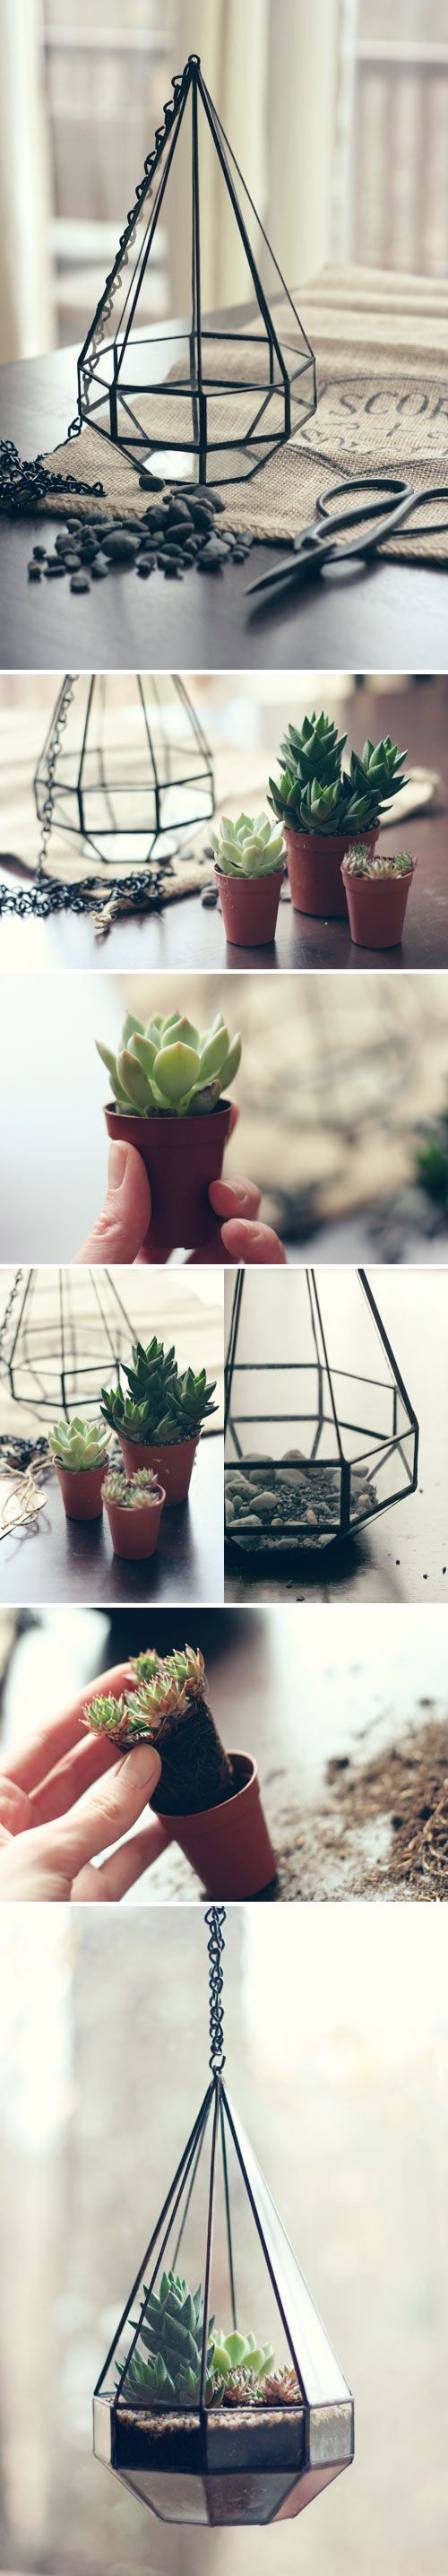 faceted glass hanging terrarium DIY